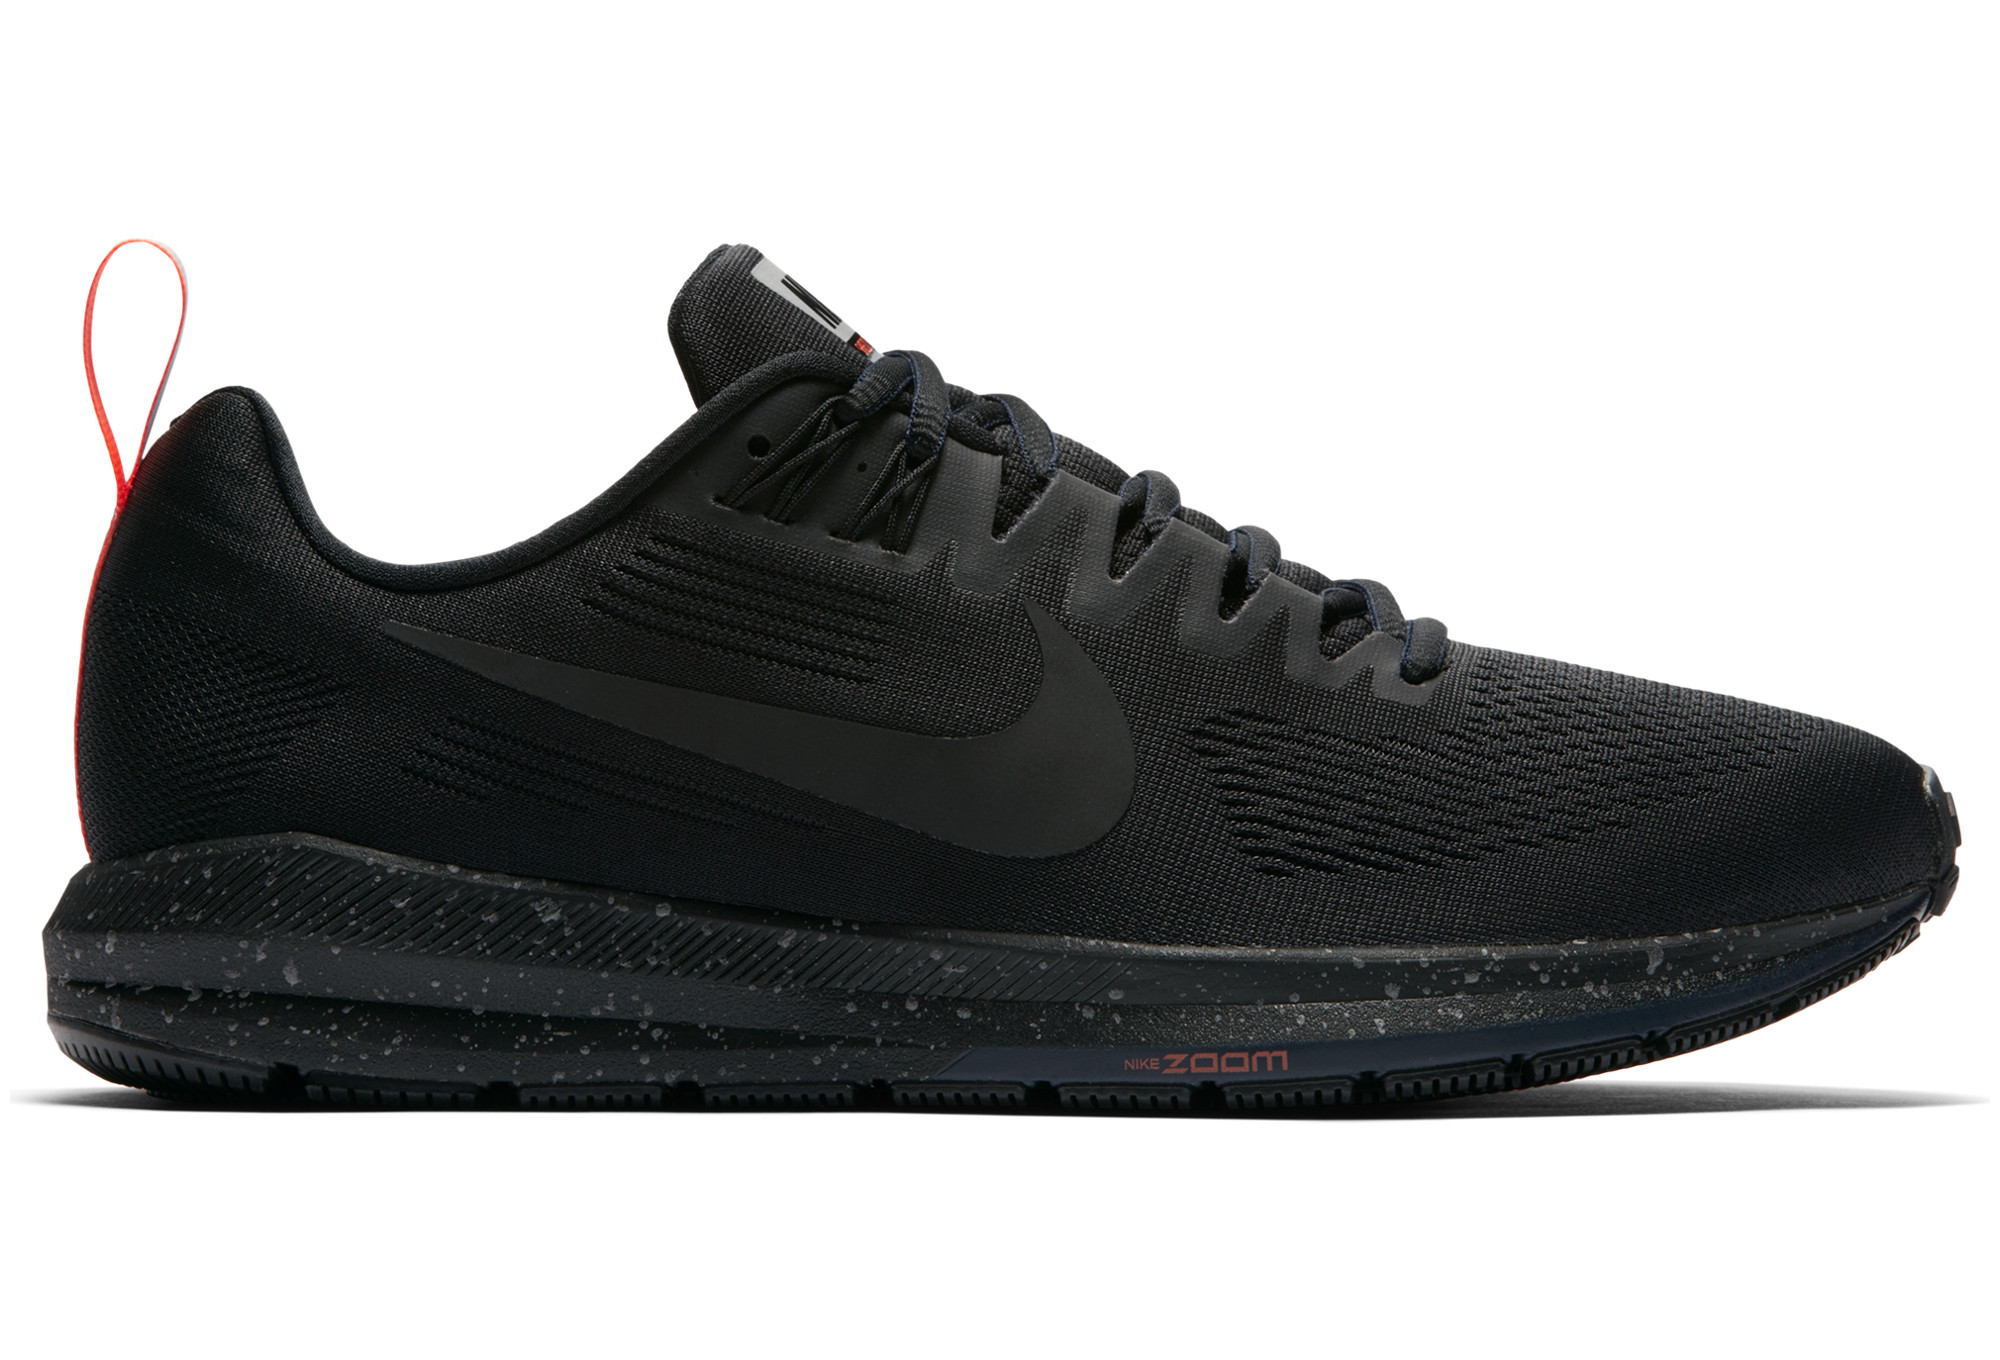 05b30f7ad18b6 Chaussures de Running Nike Air Zoom Structure 21 Shield Noir ...